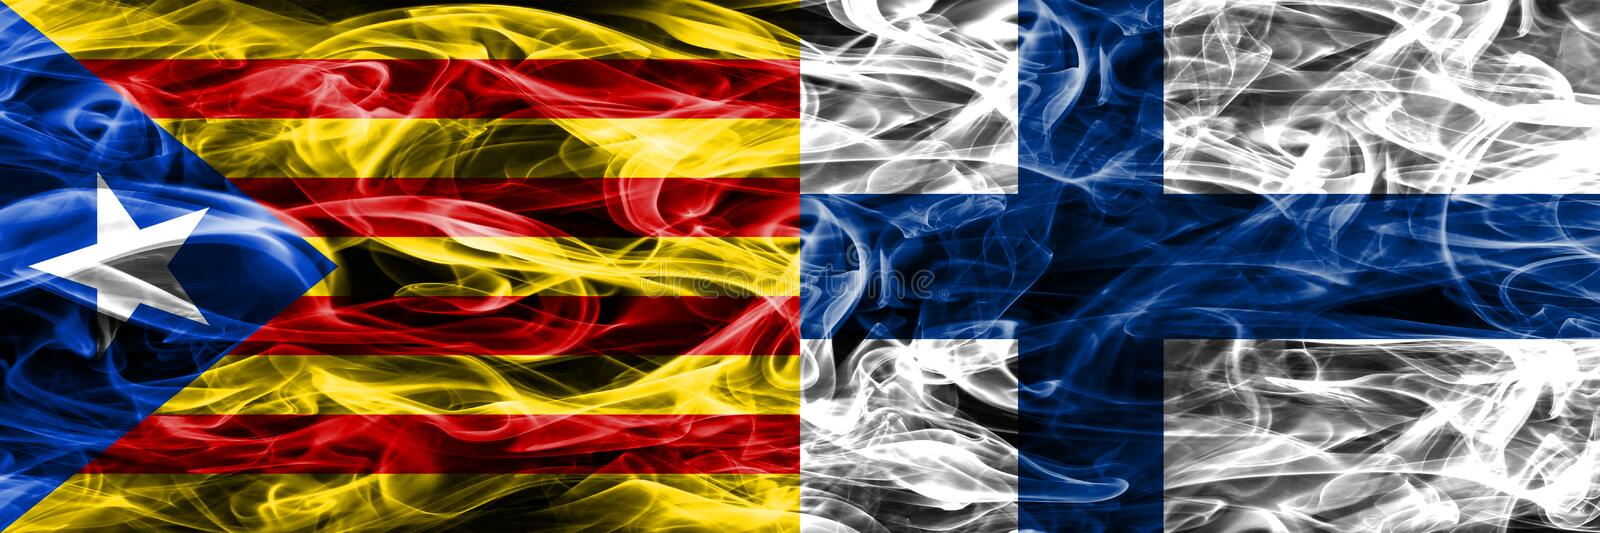 Catalonia vs Finland copy smoke flags placed side by side. Thick colored silky smoke flags of Catalan and Finland copy.  stock illustration